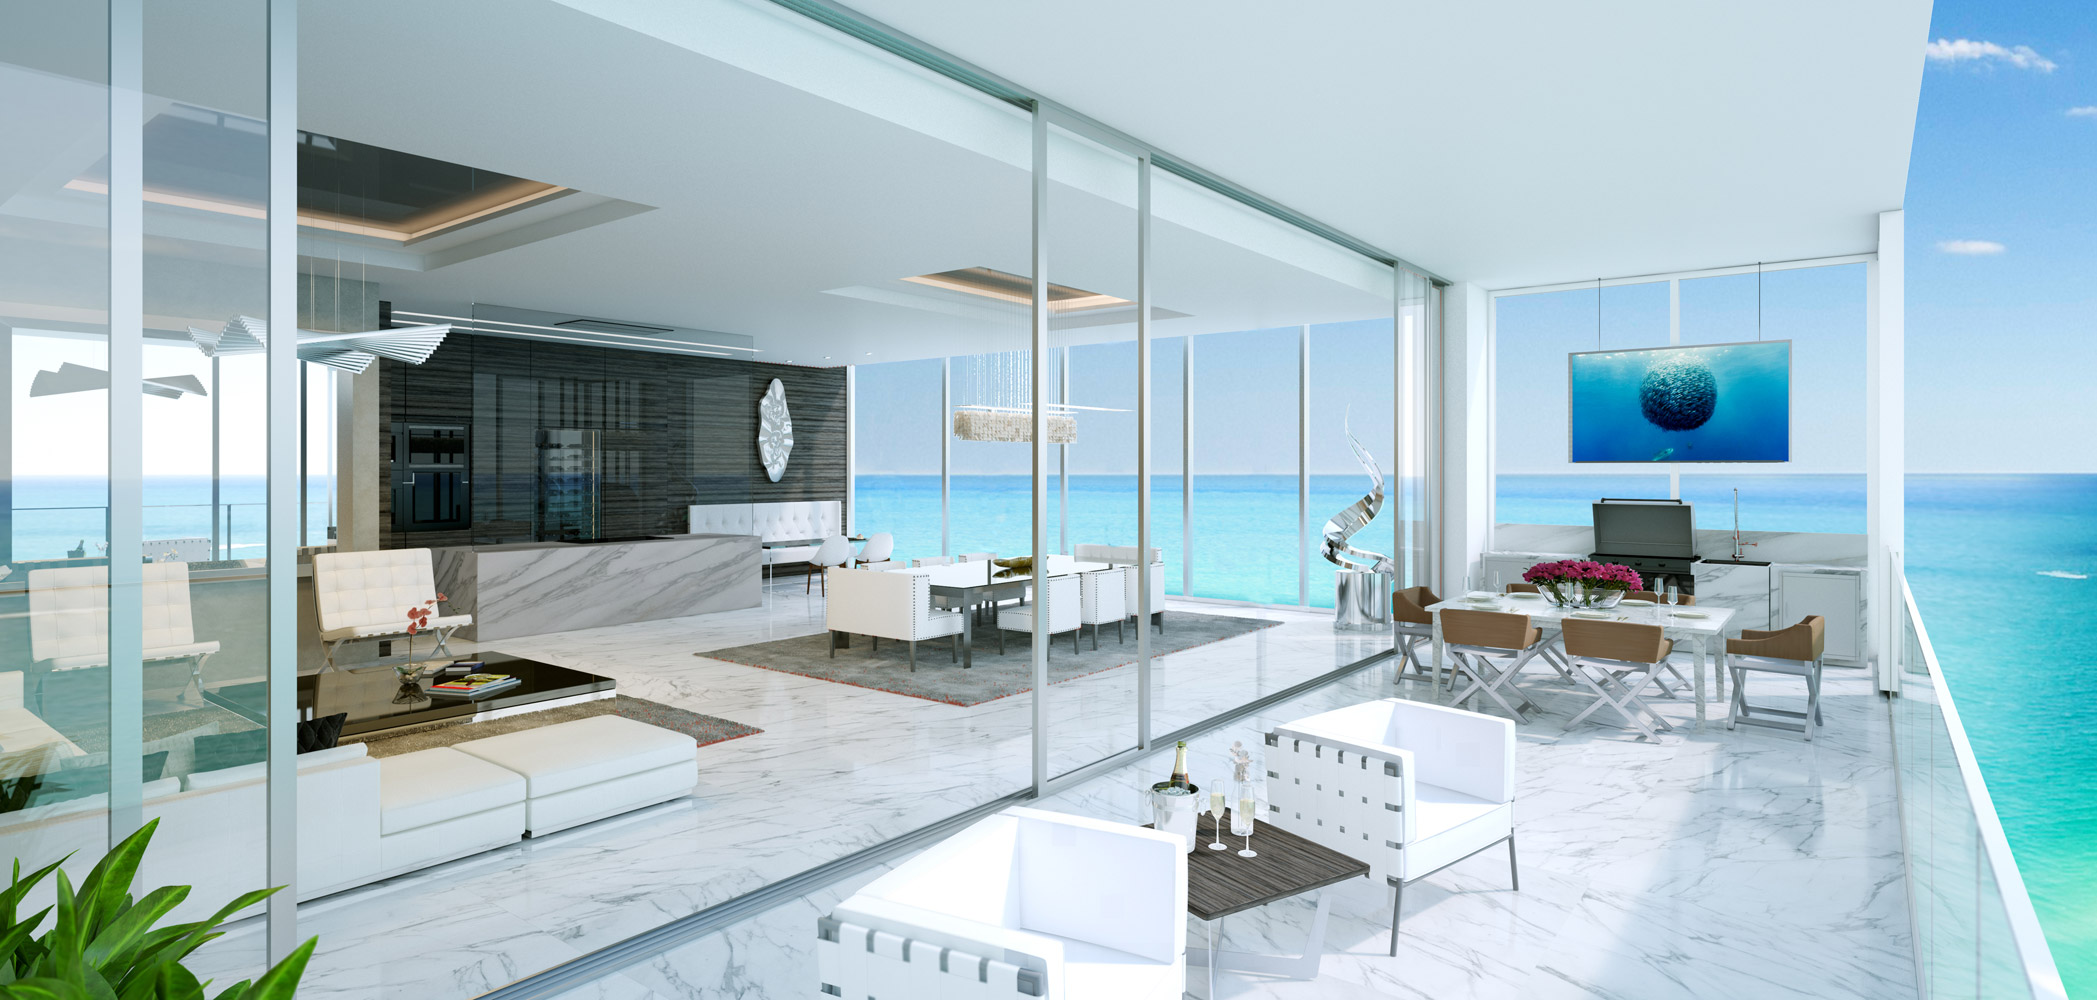 Bedroom Apartments For Rent In Miami Beach